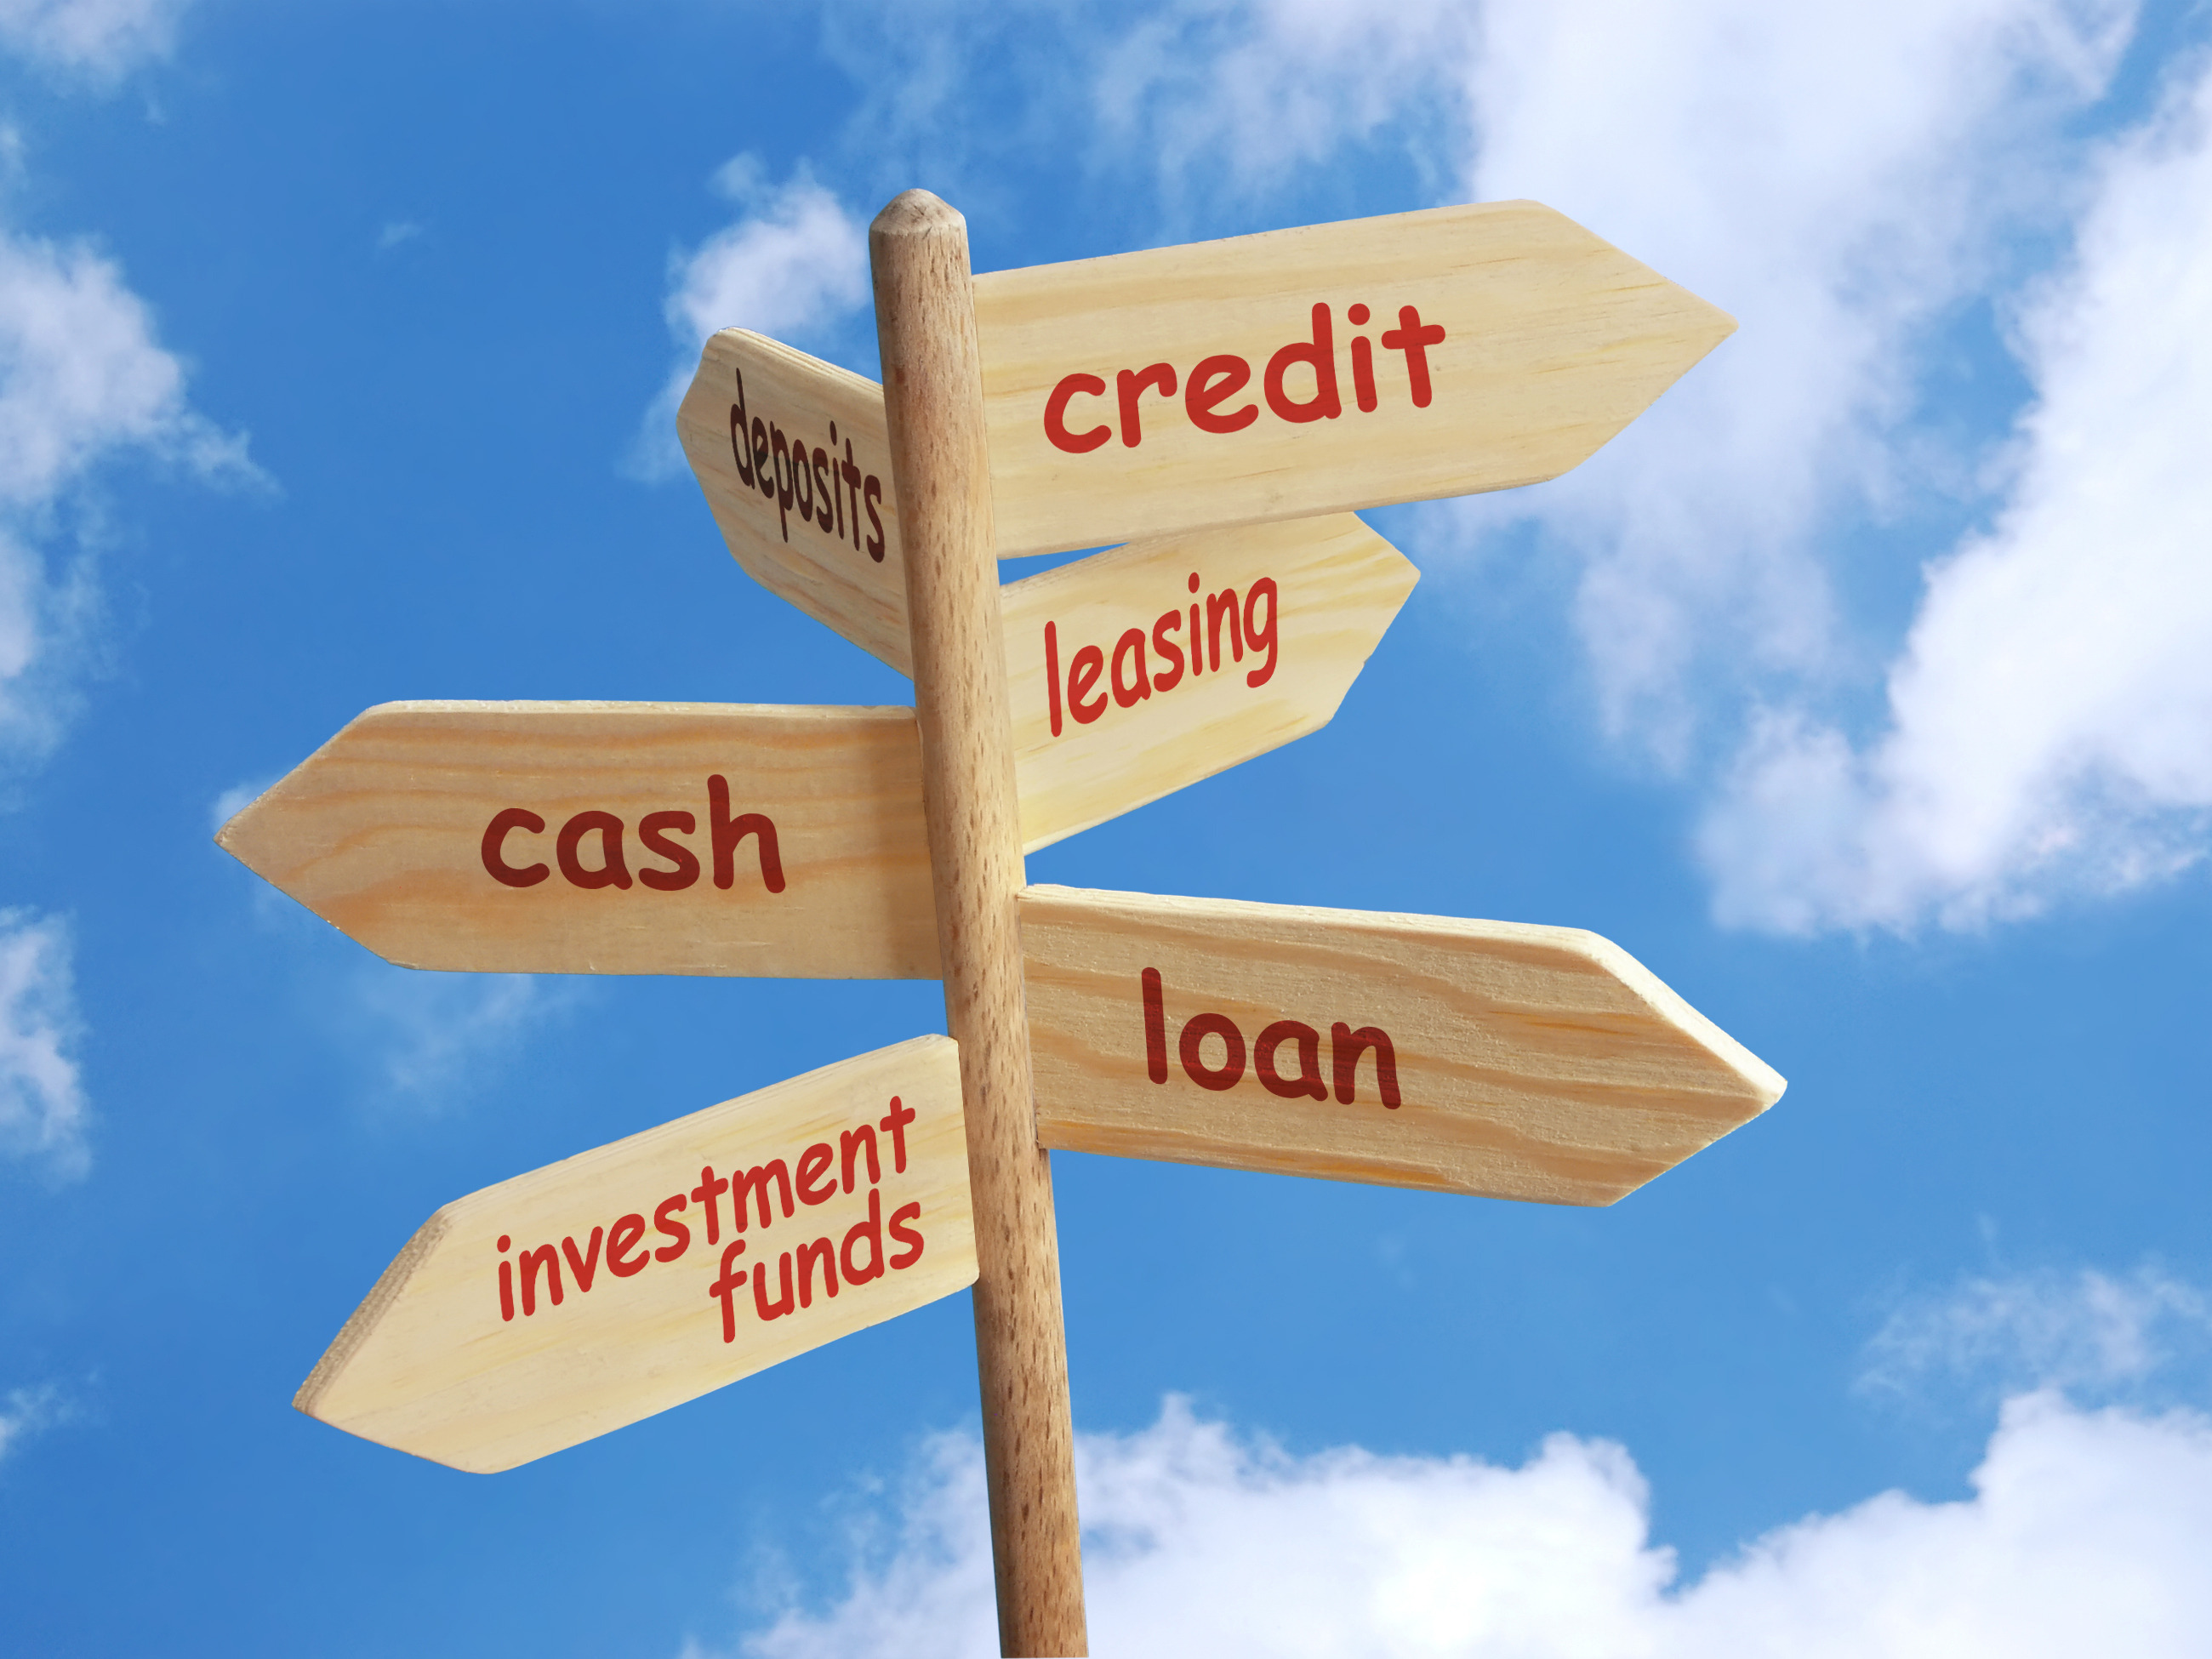 The growth of alternative finance for small businesses